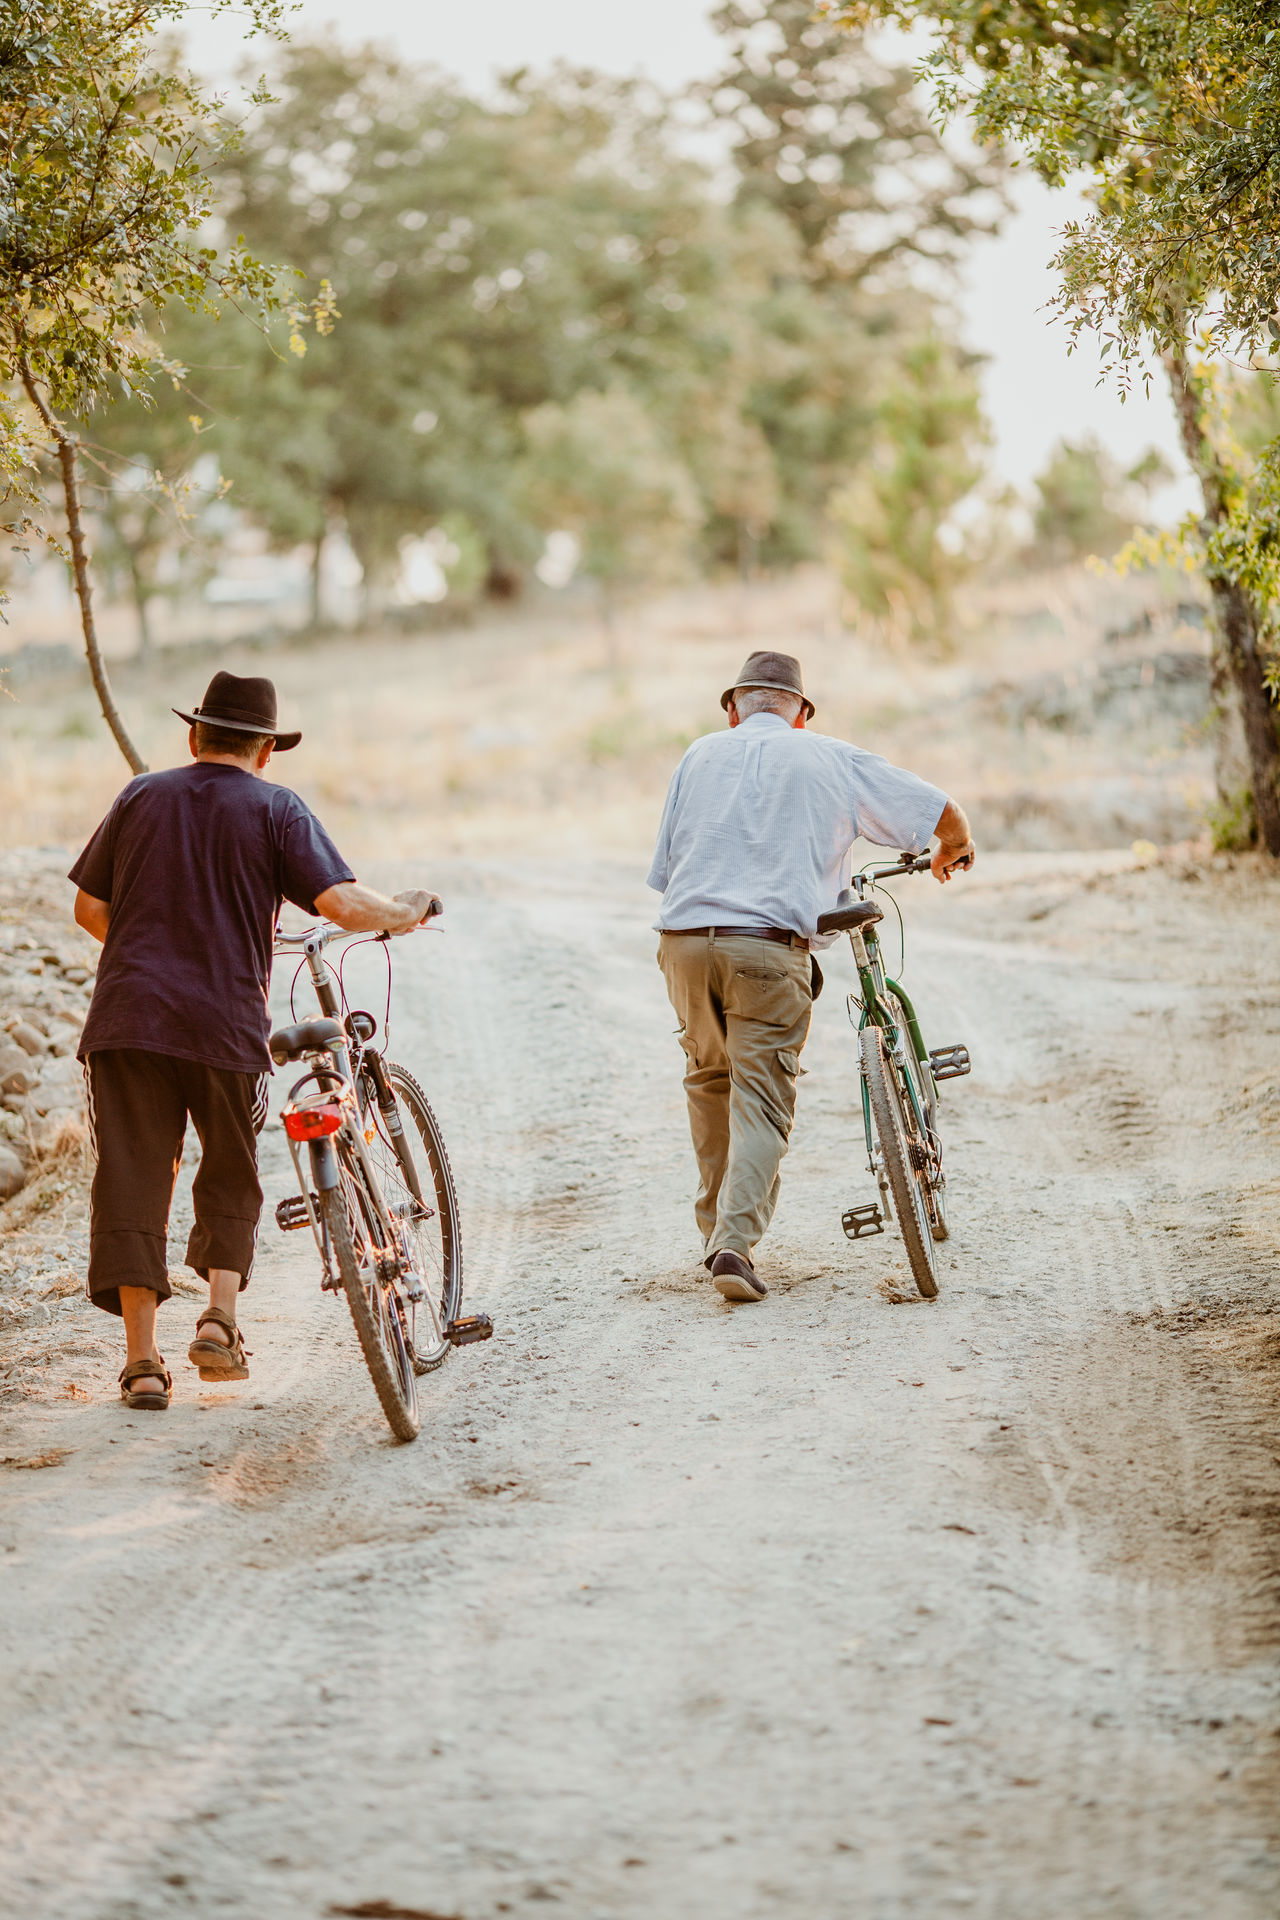 Rear view of men walking with bicycles on dirt road